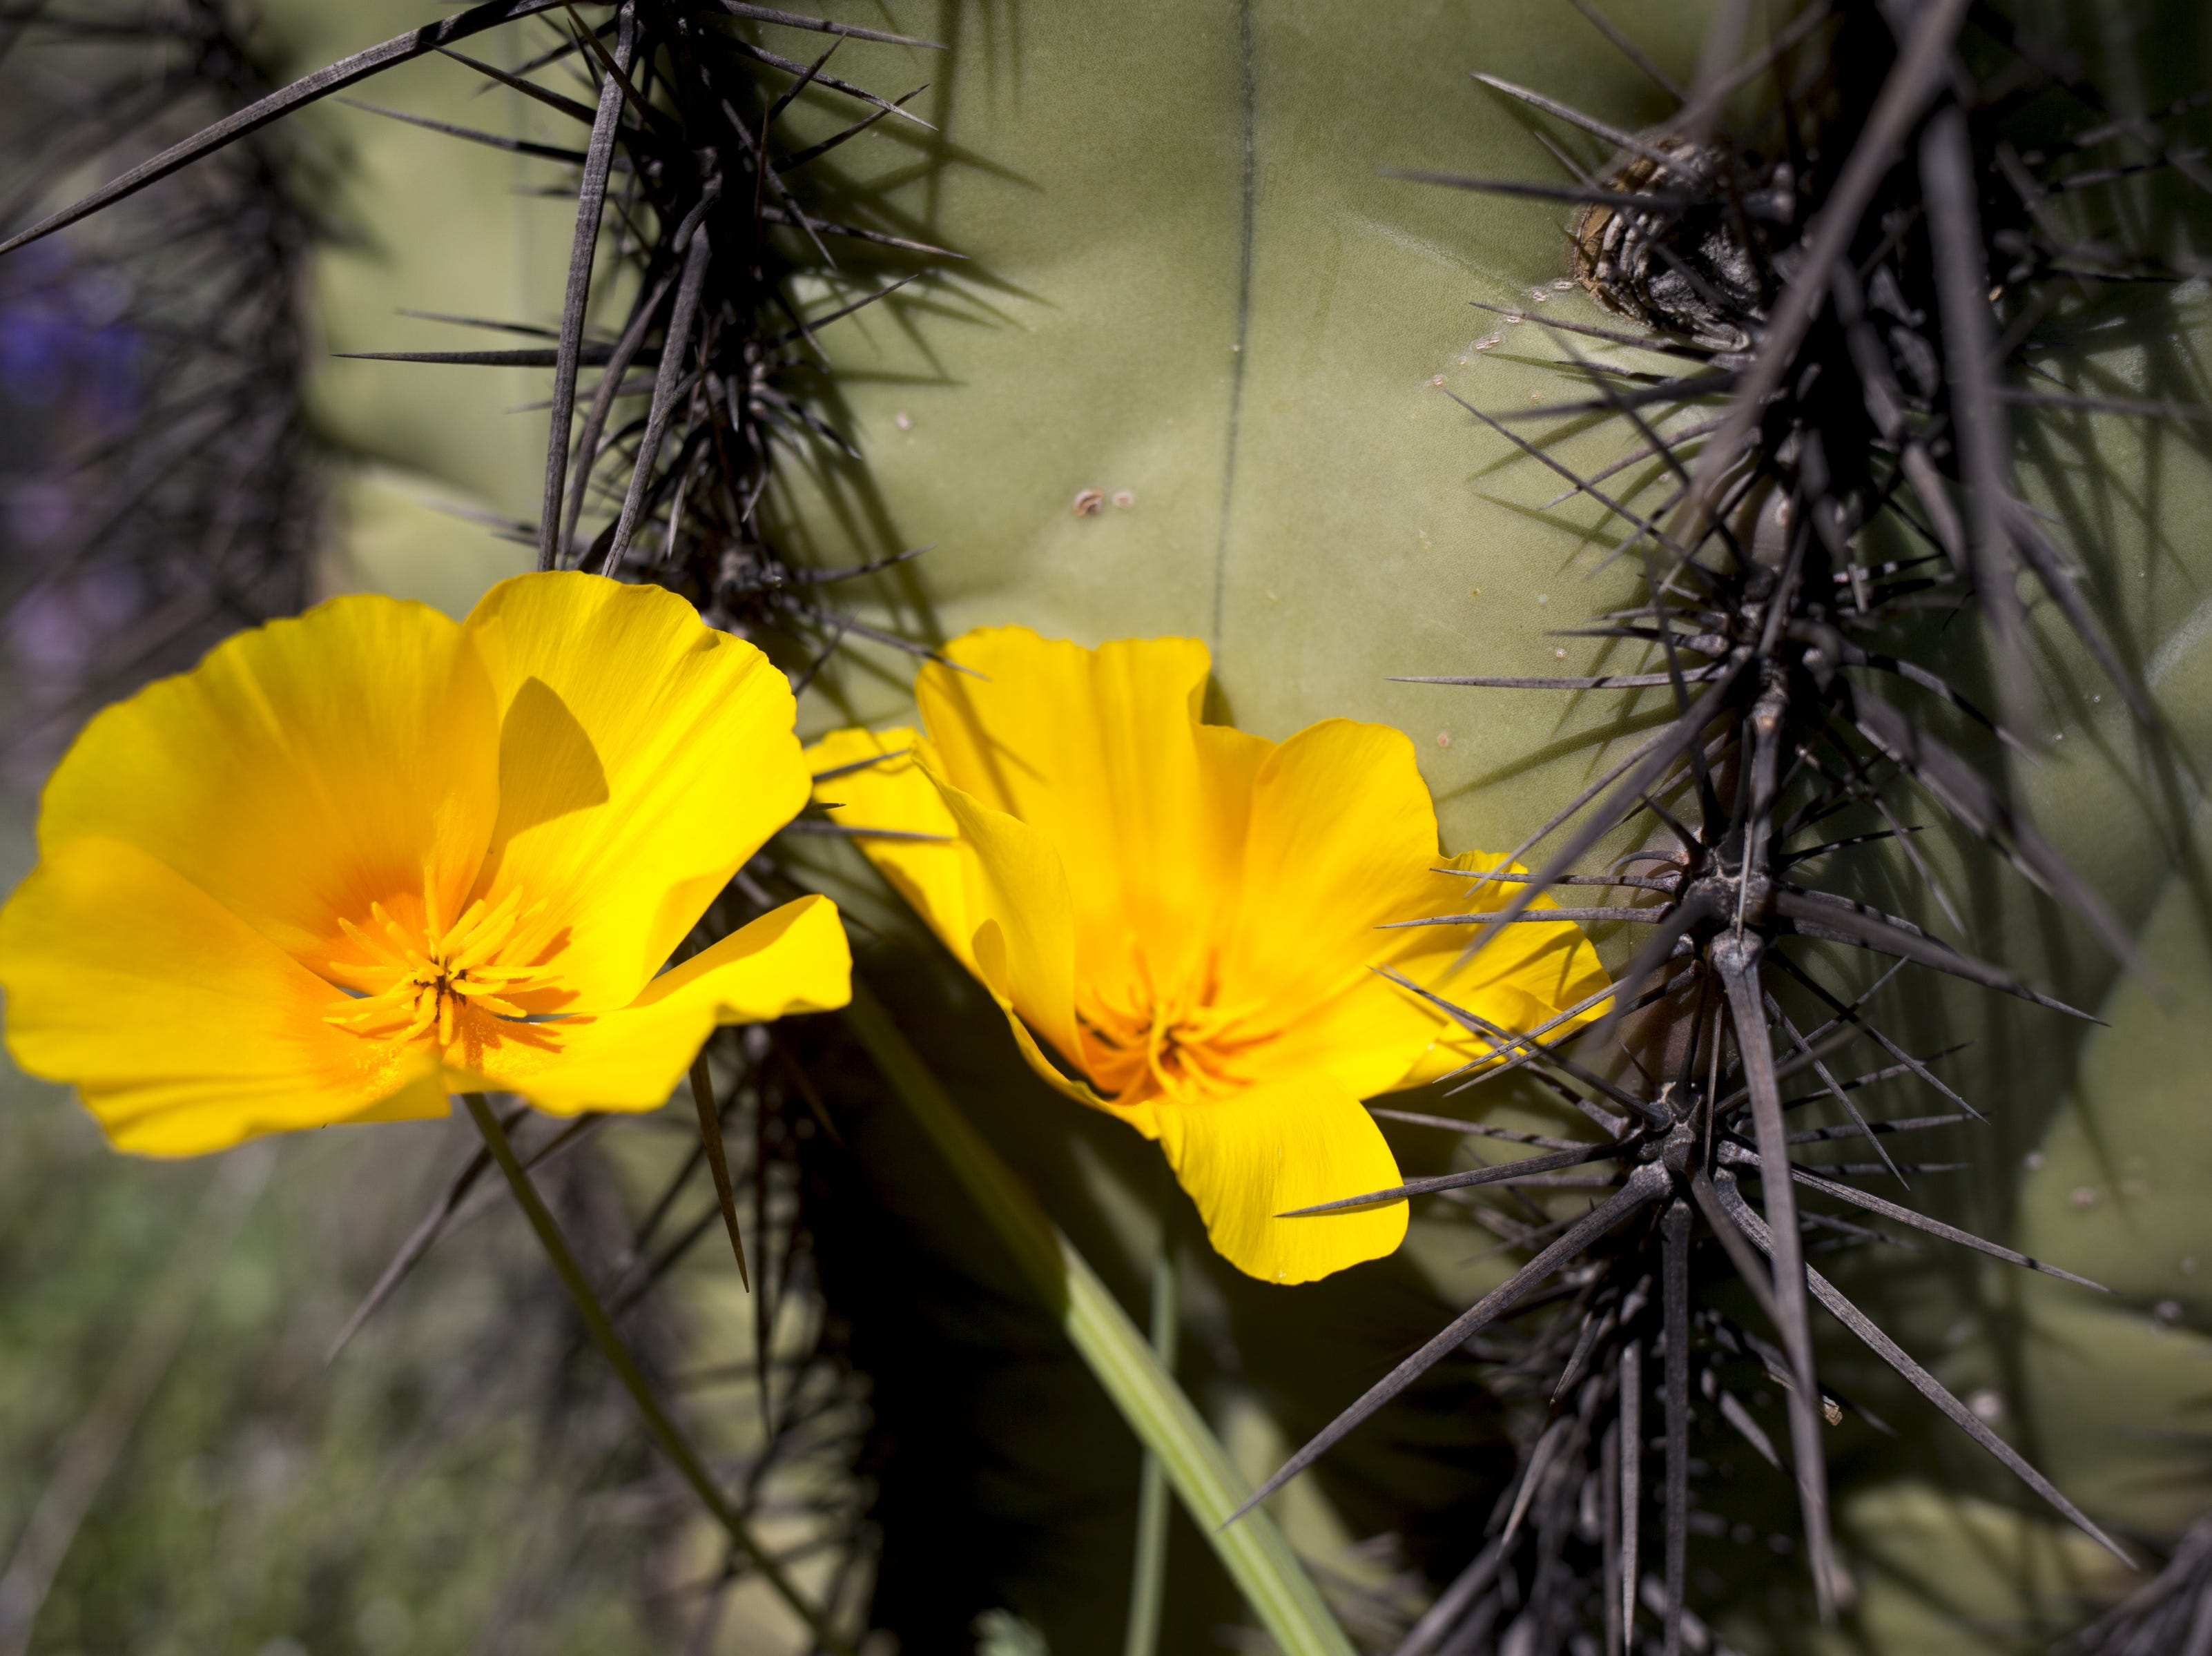 Poppies and a cactus, March 5, 2019, at Picacho Peak State Park, Arizona.